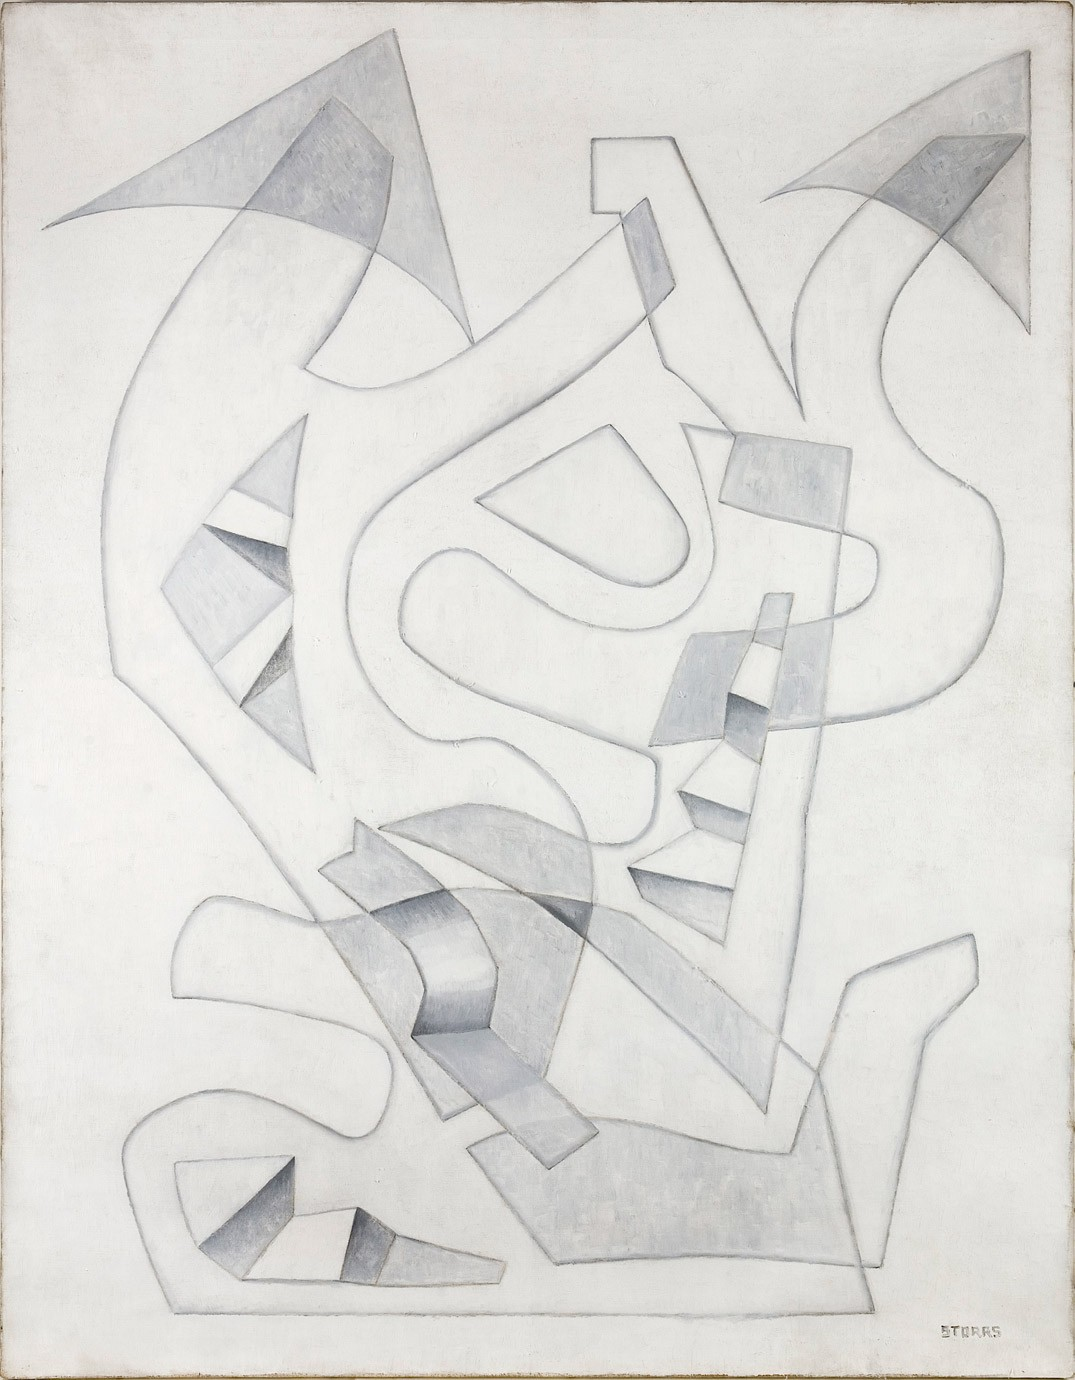 This work by John Bradley Storrs is a white and grey abstraction